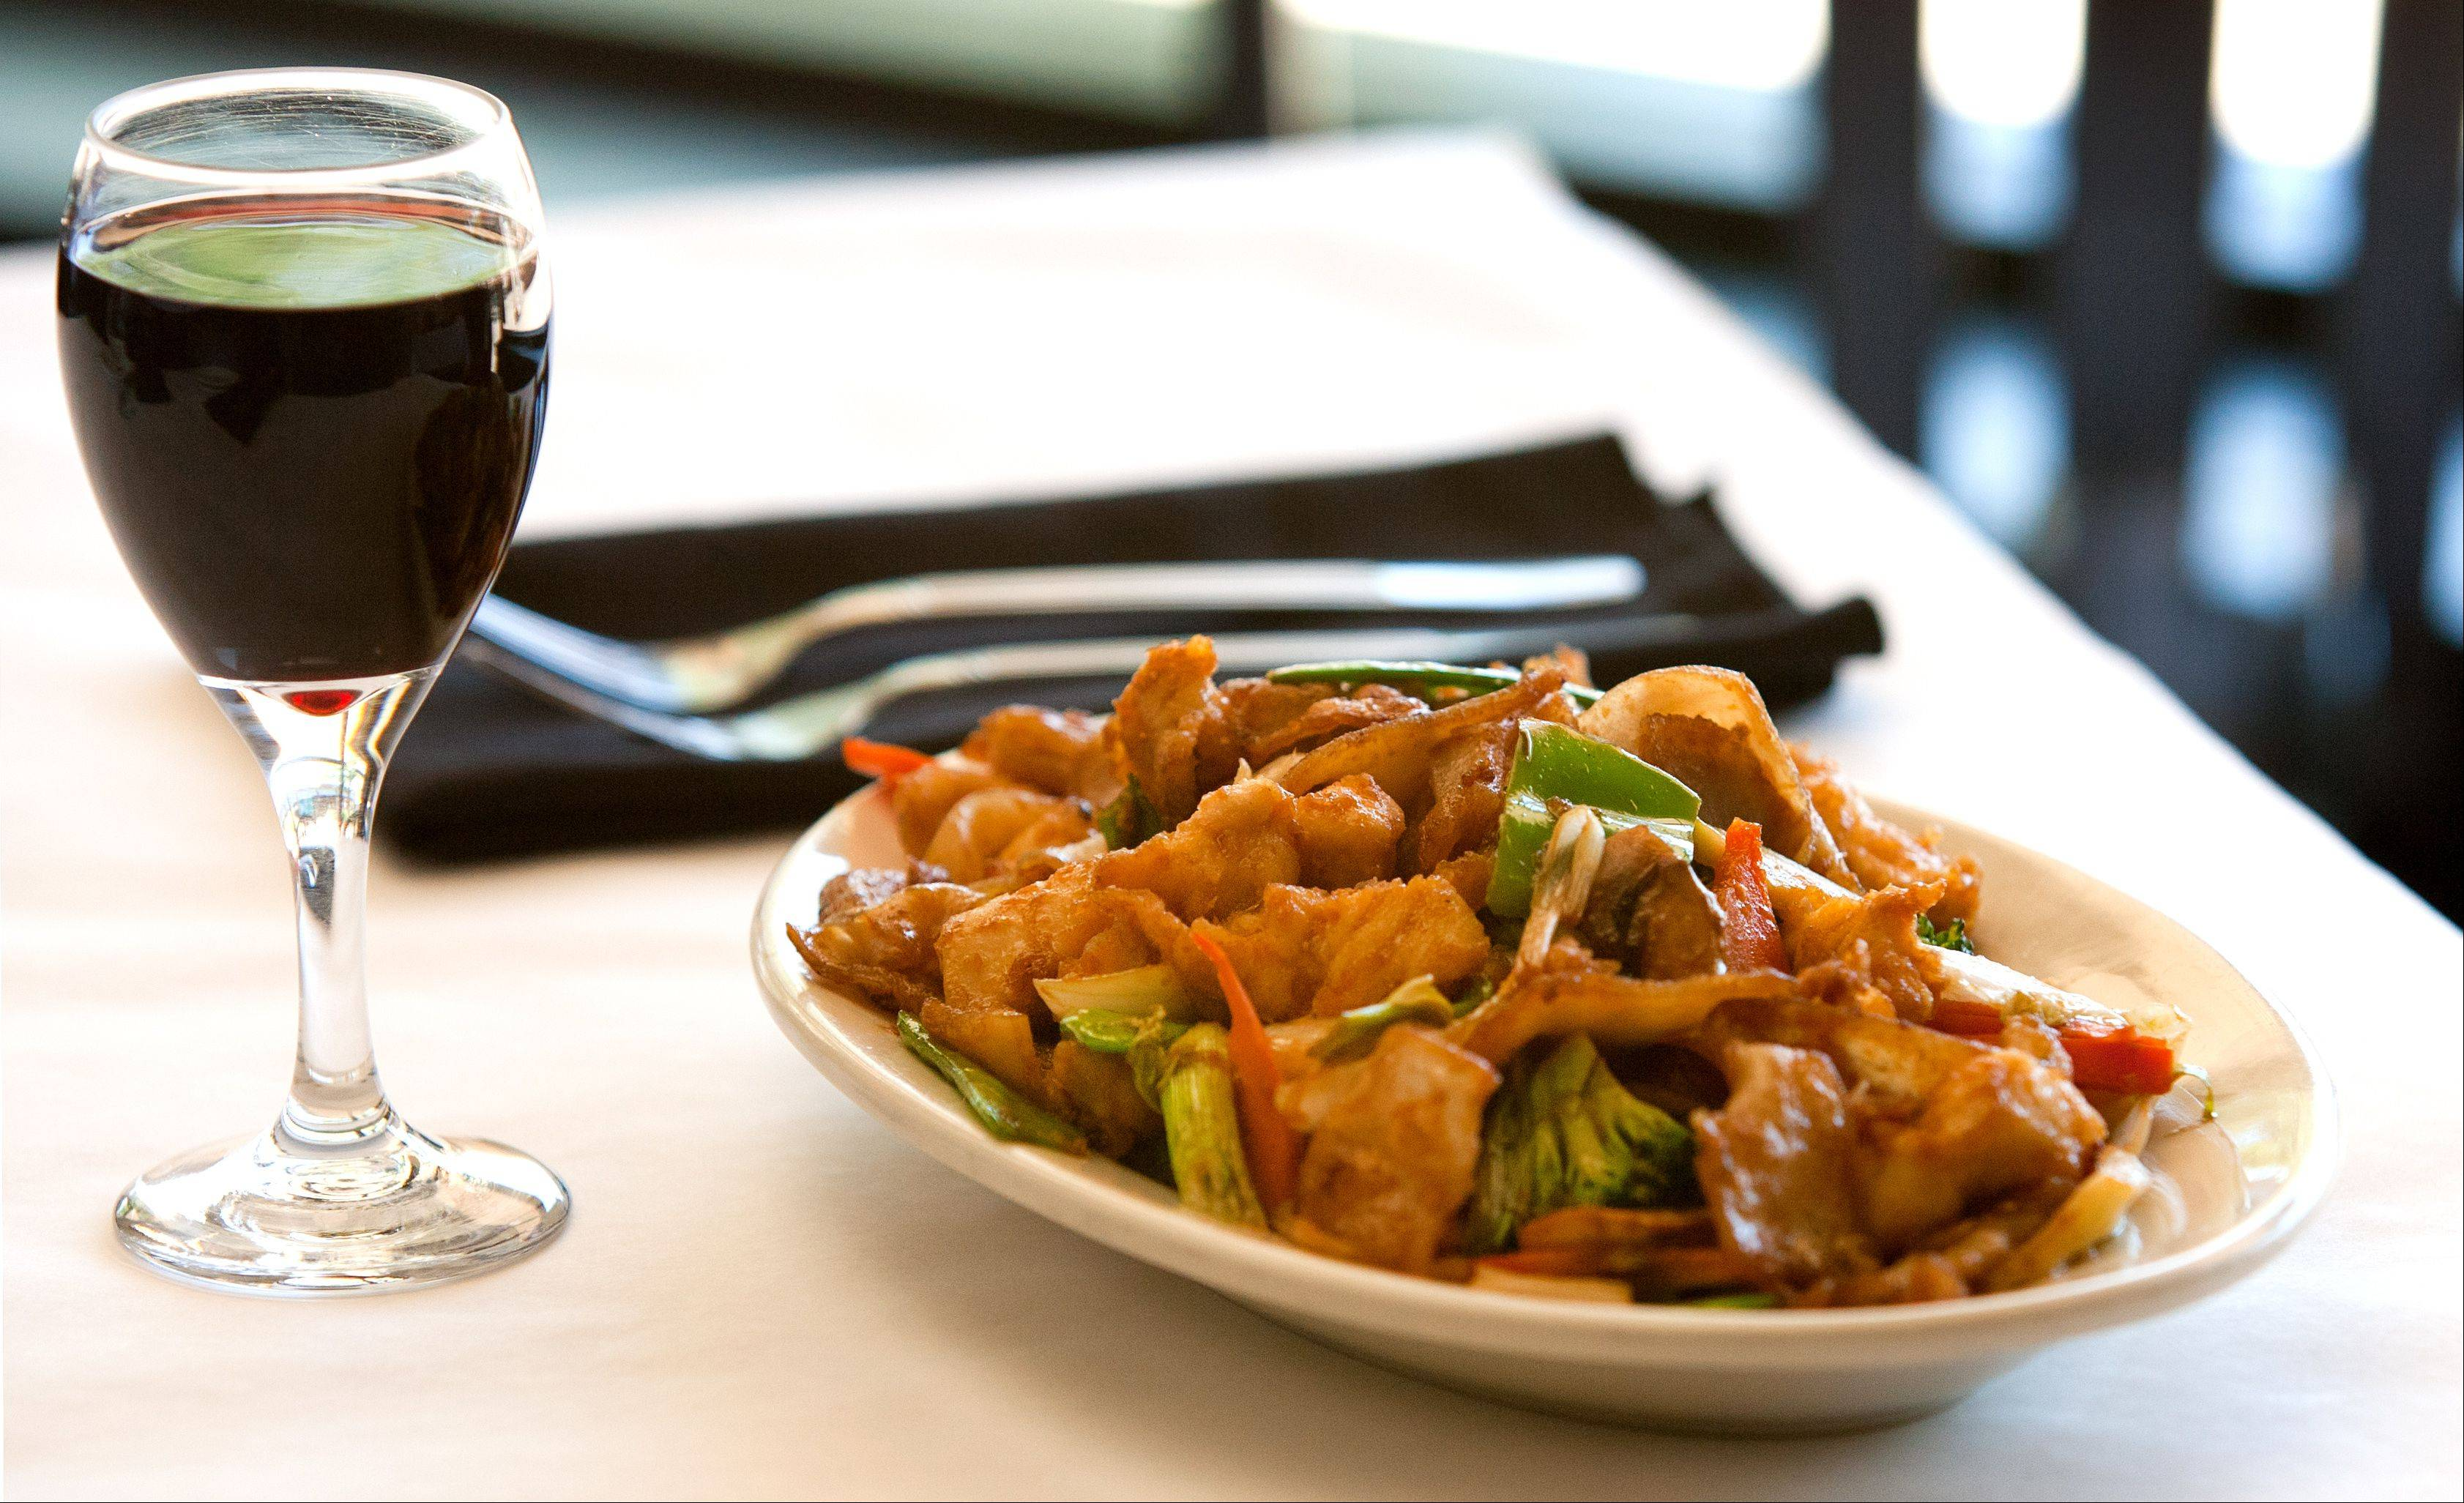 Chicken chow fun is one of the many well-crafted, delicious dishes available at Hua Ting.